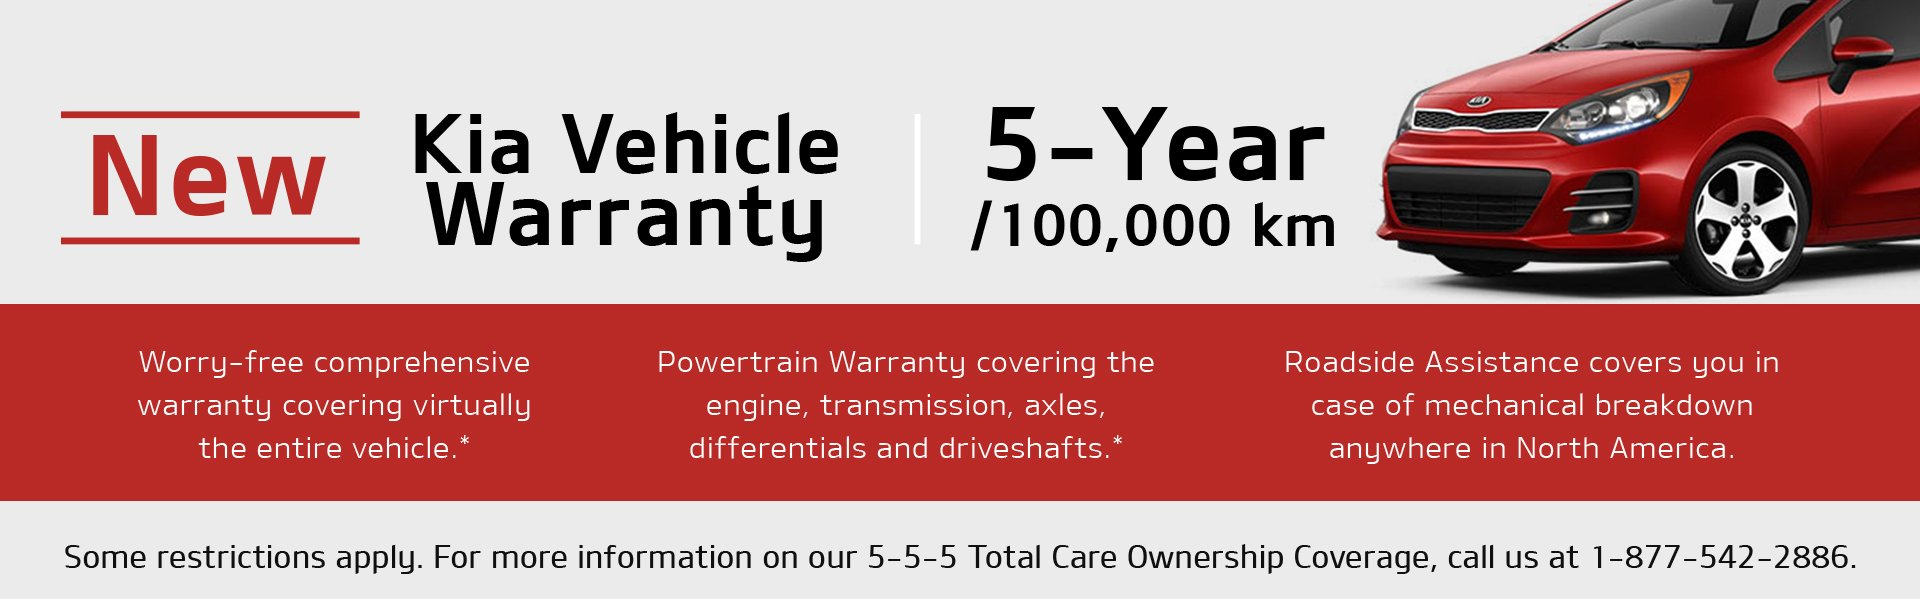 Kia Vehjicle Warranty